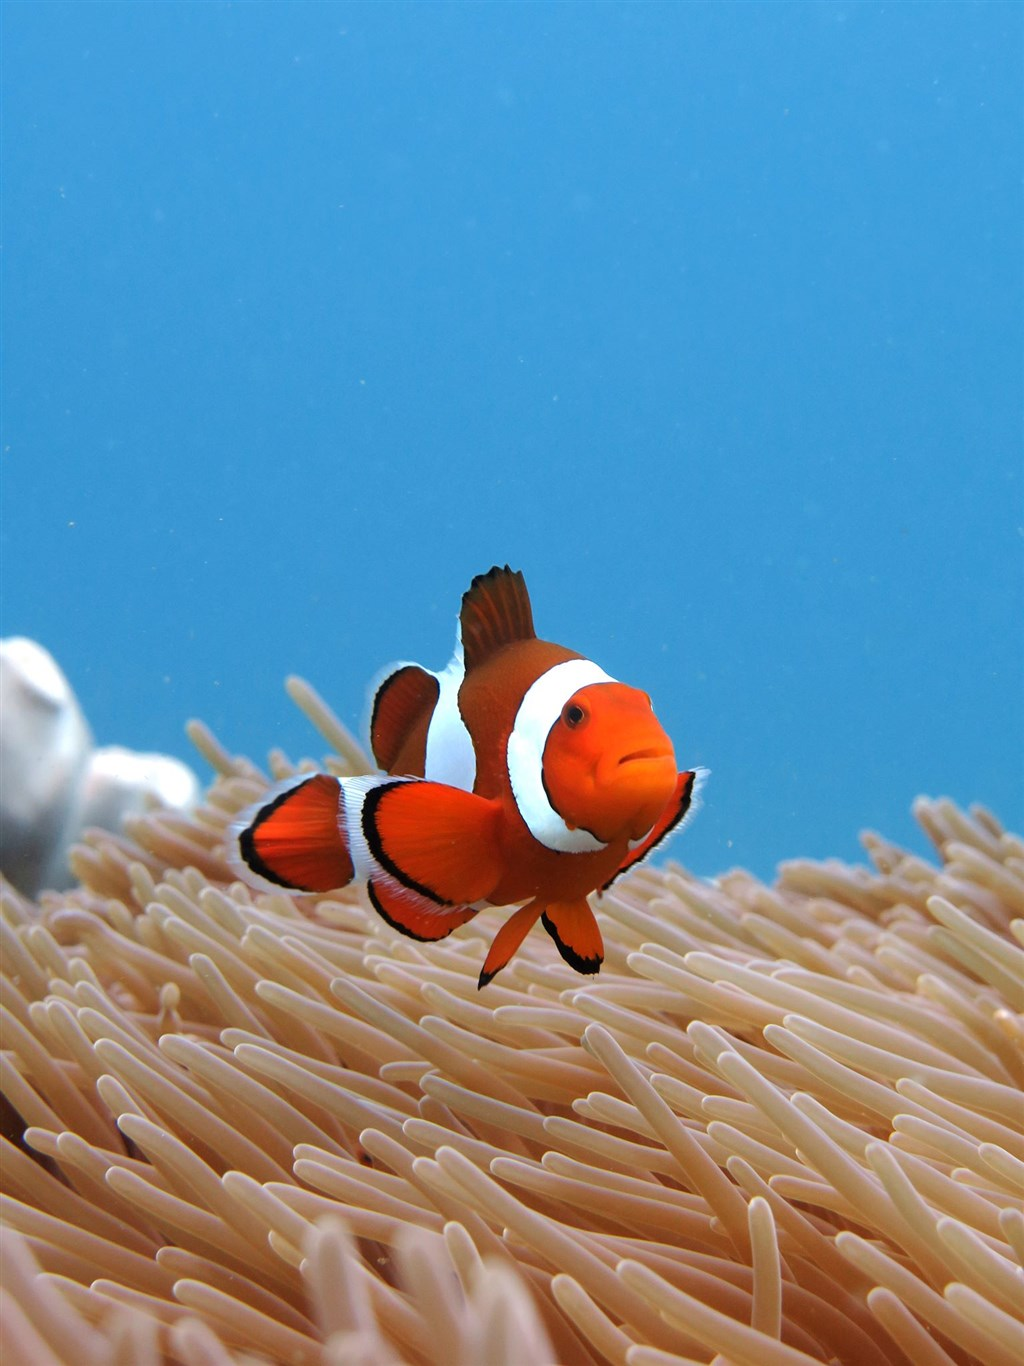 Clown Anemonefish Photo in Gili Mimpang in Indonesia